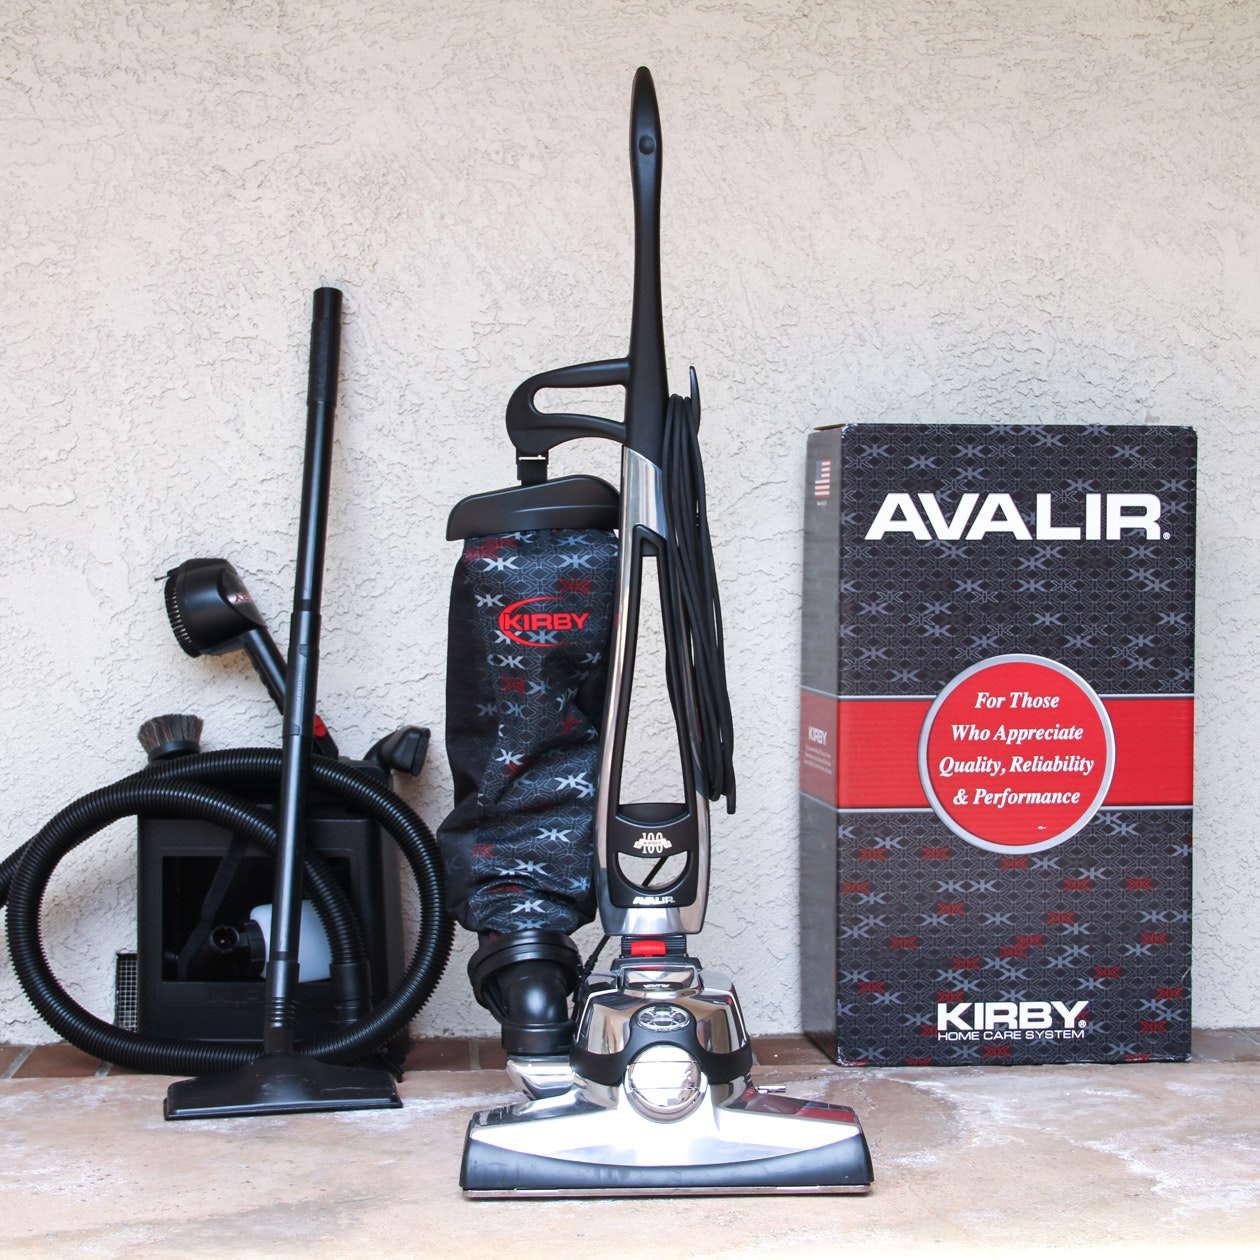 Avalir Kirby Home Care System Vacuum Cleaner